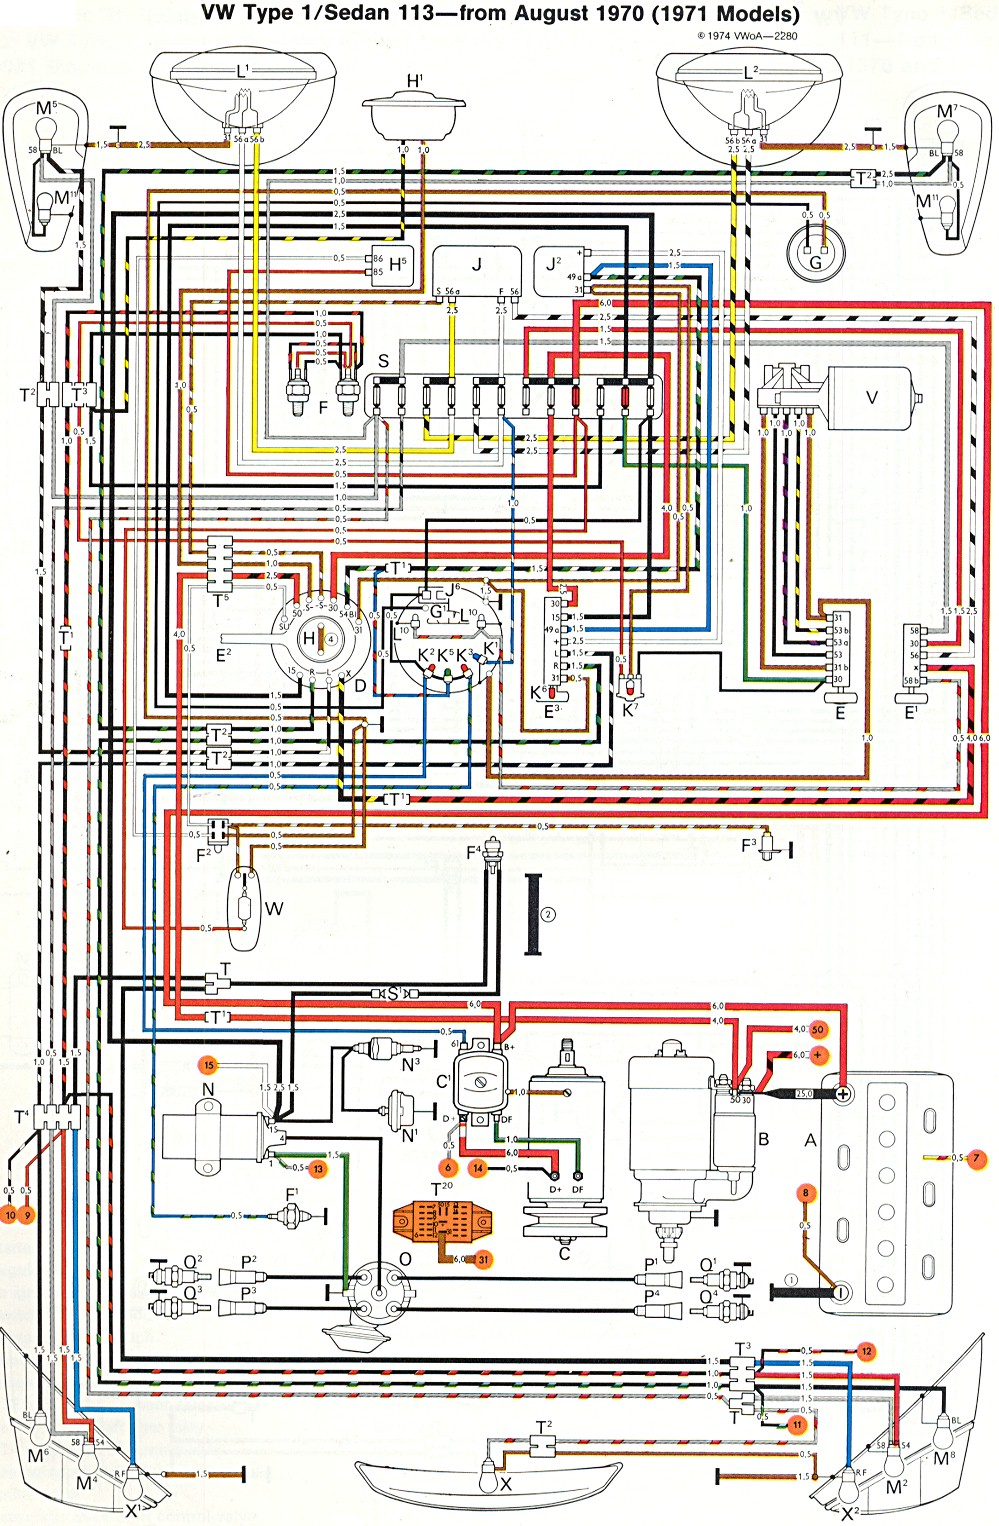 Vw Wiring Harness Diagram Will Be A Thing Volkswagen Jetta Door 1971 Simple Rh David Huggett Co Uk 2006 Radio